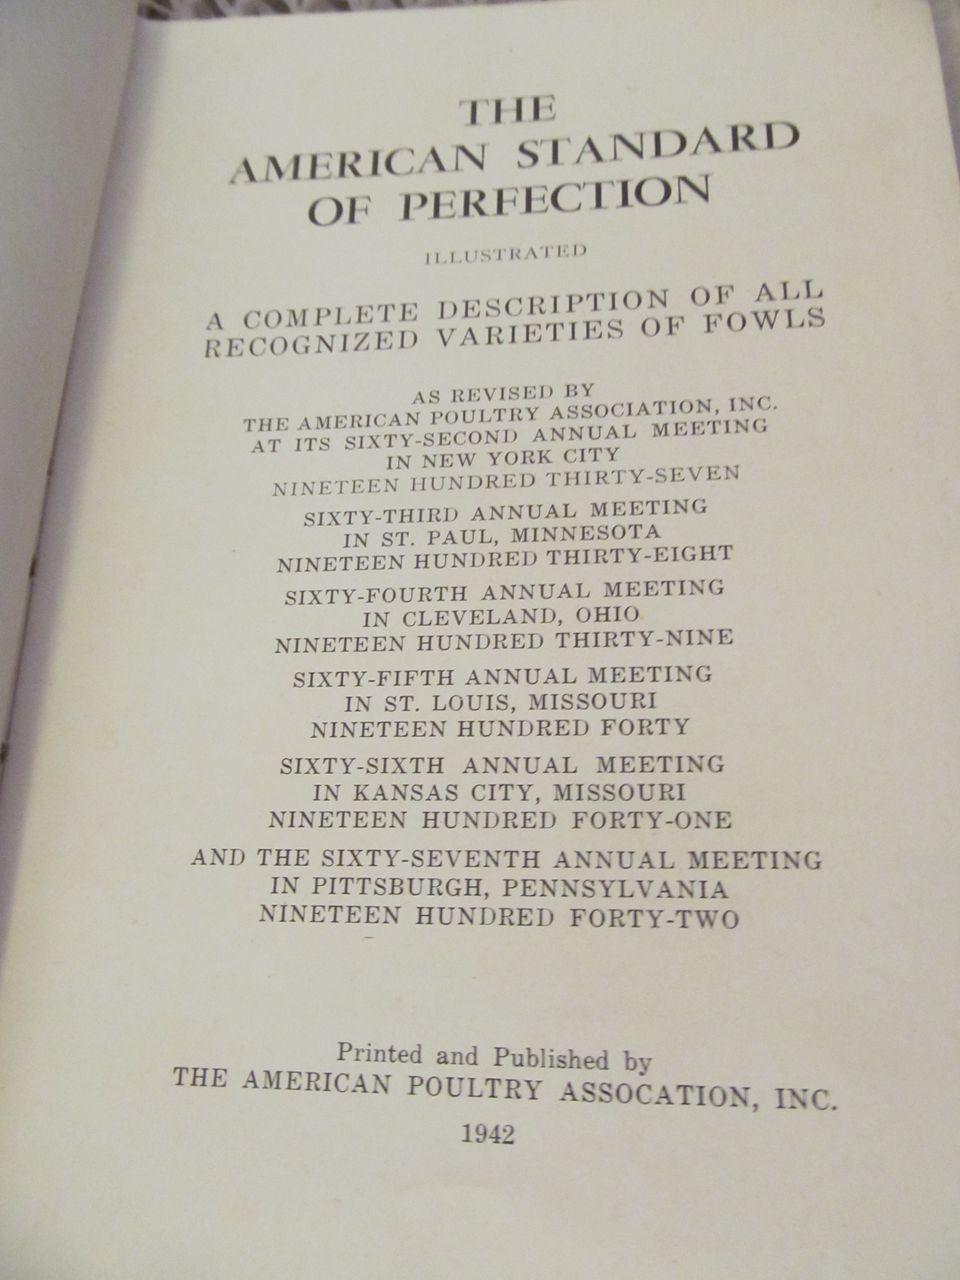 1942 American Standard of Perfection,  A Complete Description of all Recognized Varieties of Fowls, Illustrated, Publ The American Poultry Association, Inc